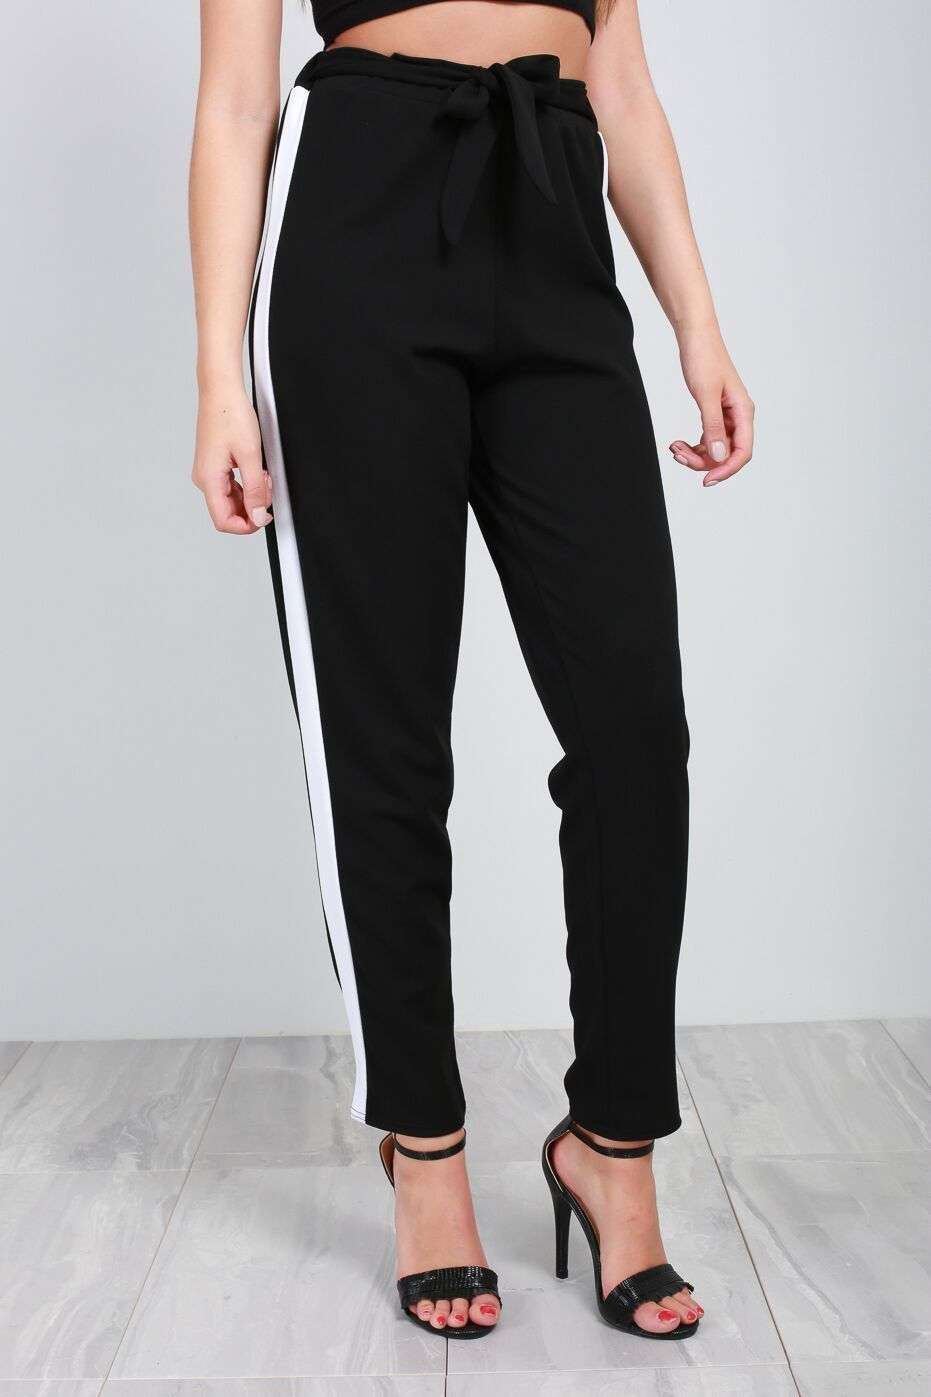 Theo Panelled Stripe High Waist Cigarette Trouser - bejealous-com